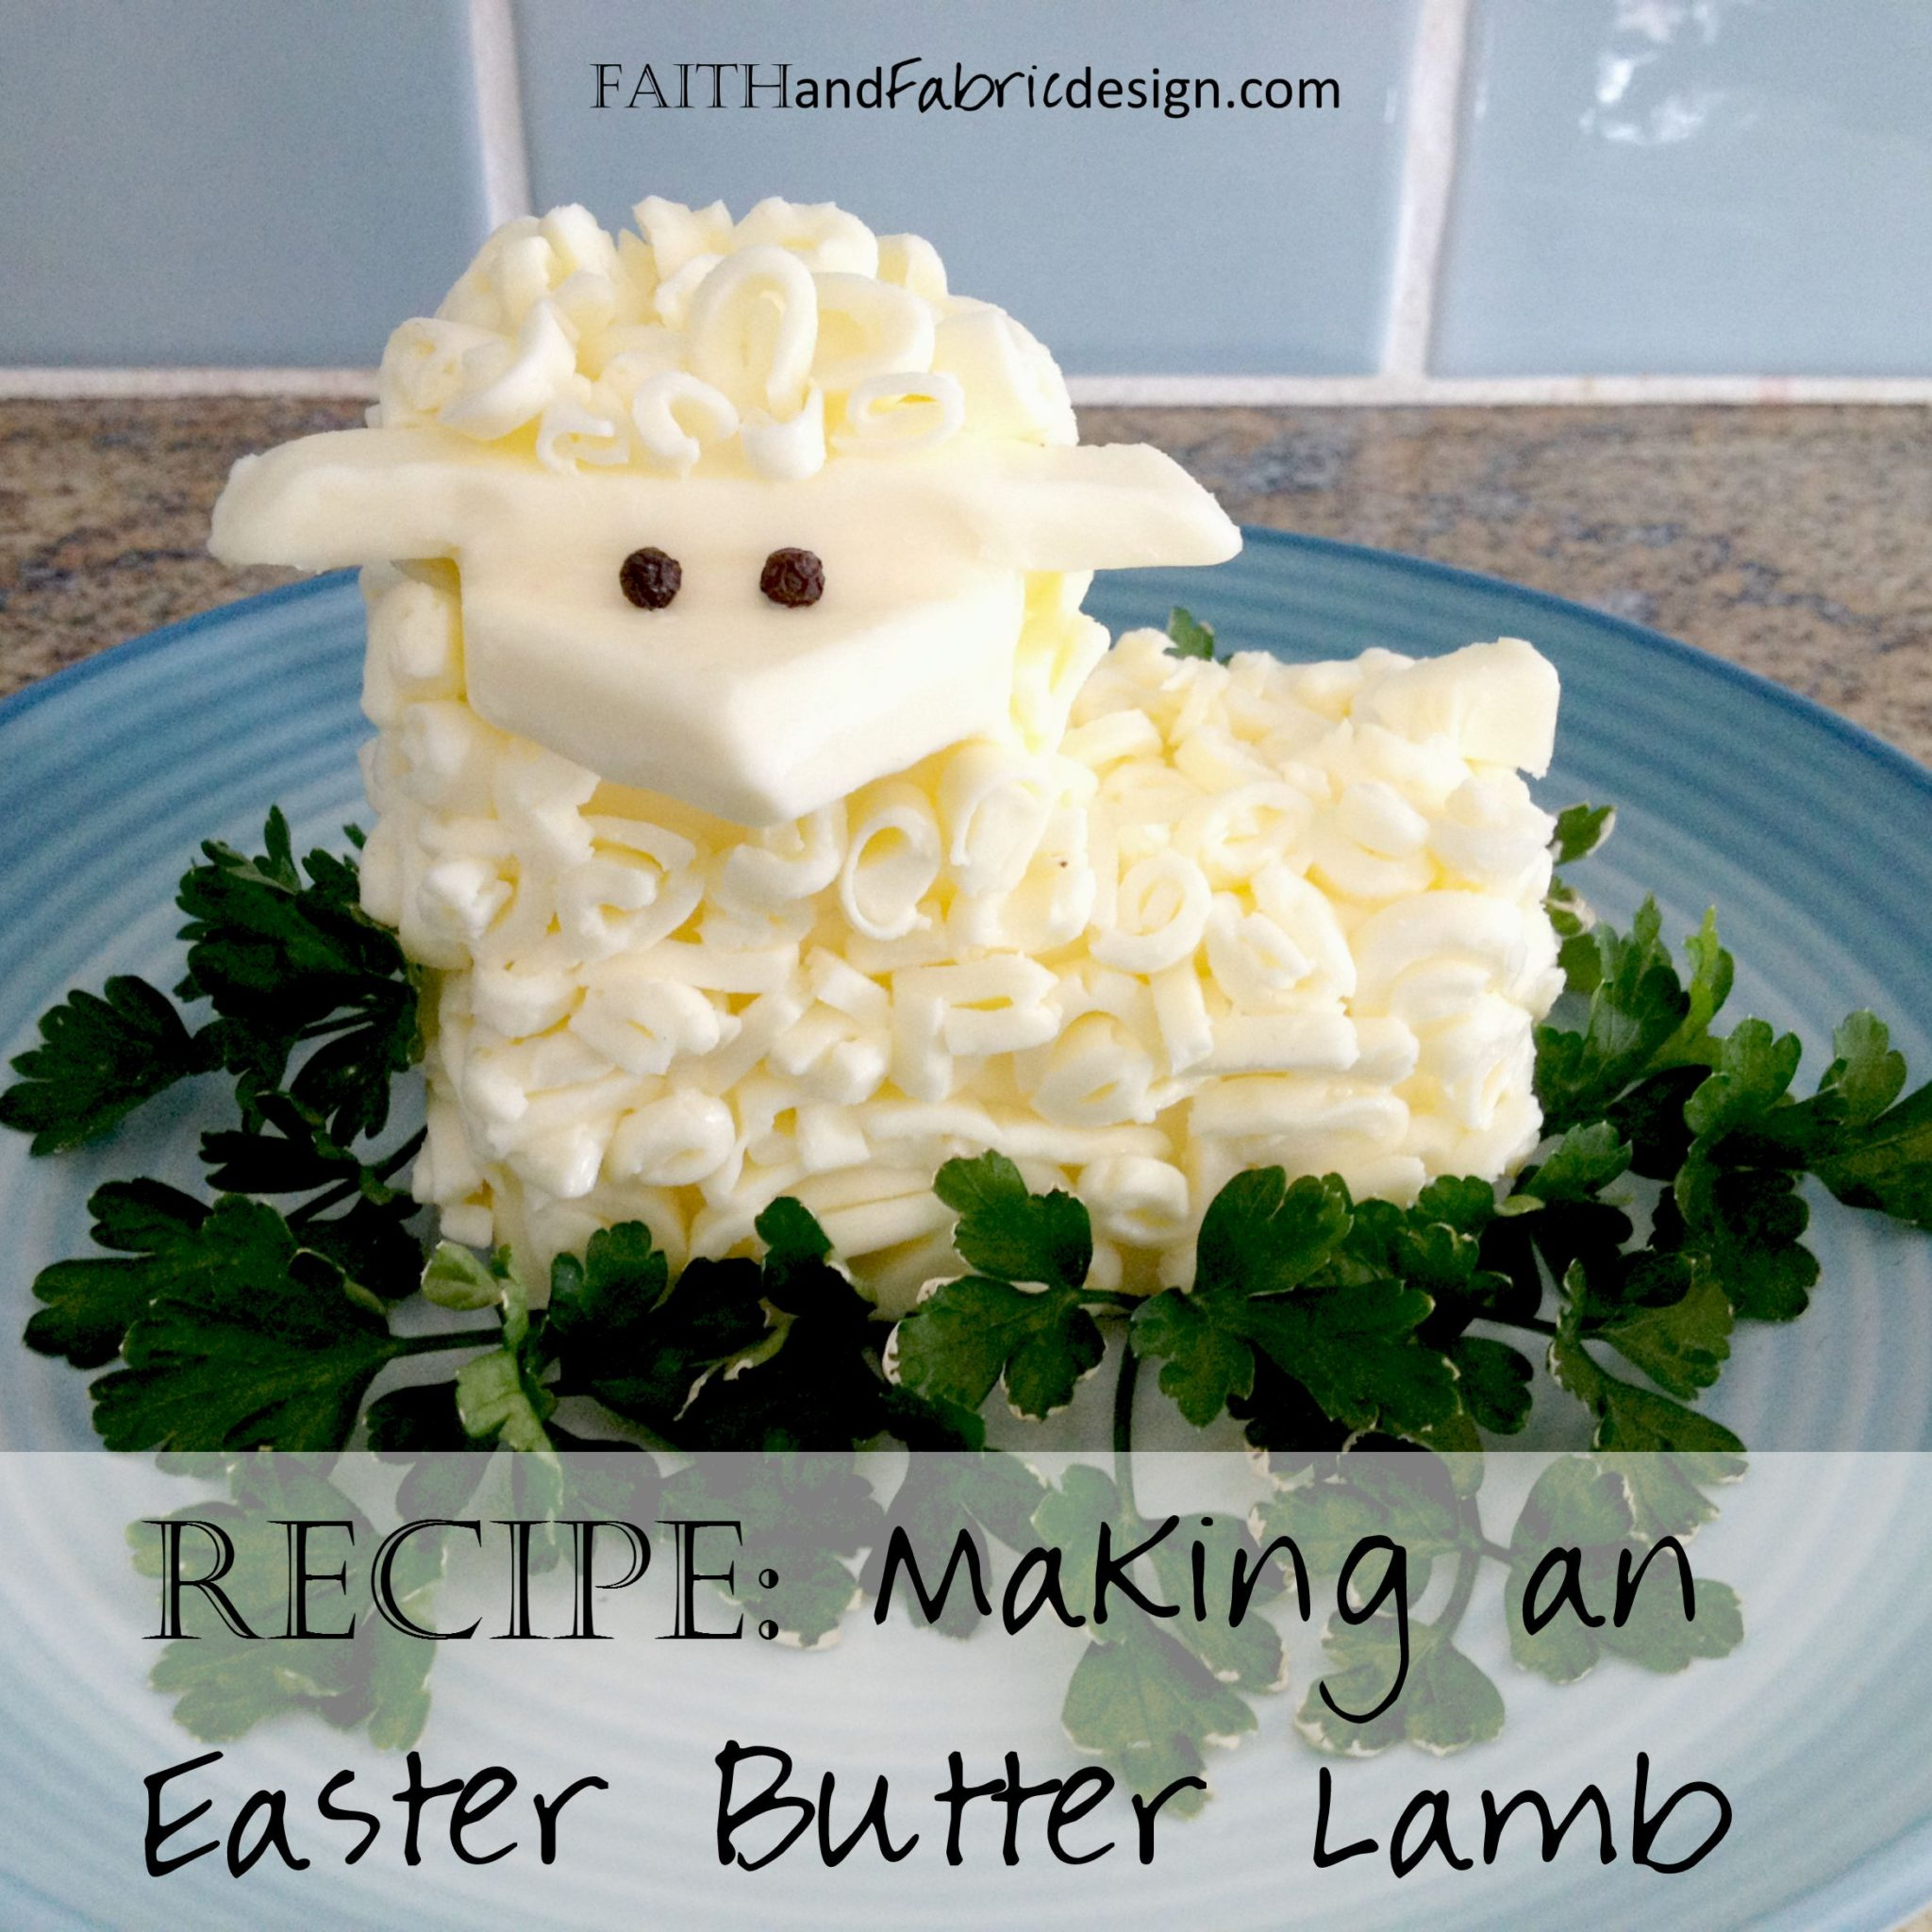 RECIPE: Create a Butter Lamb for Easter Brunch